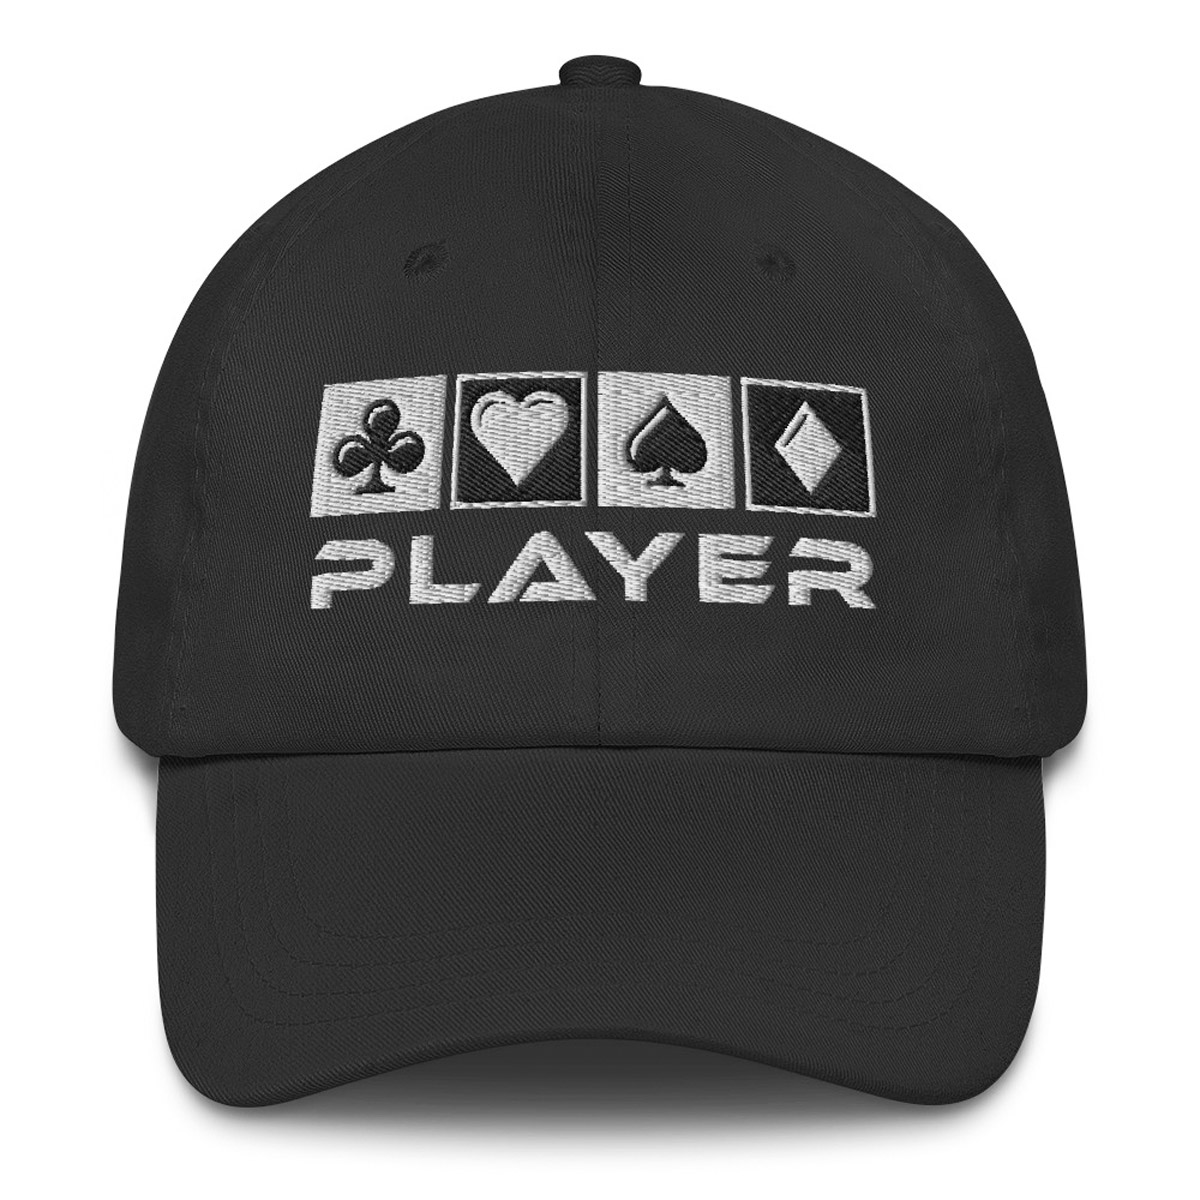 Player Dad Hat - Black